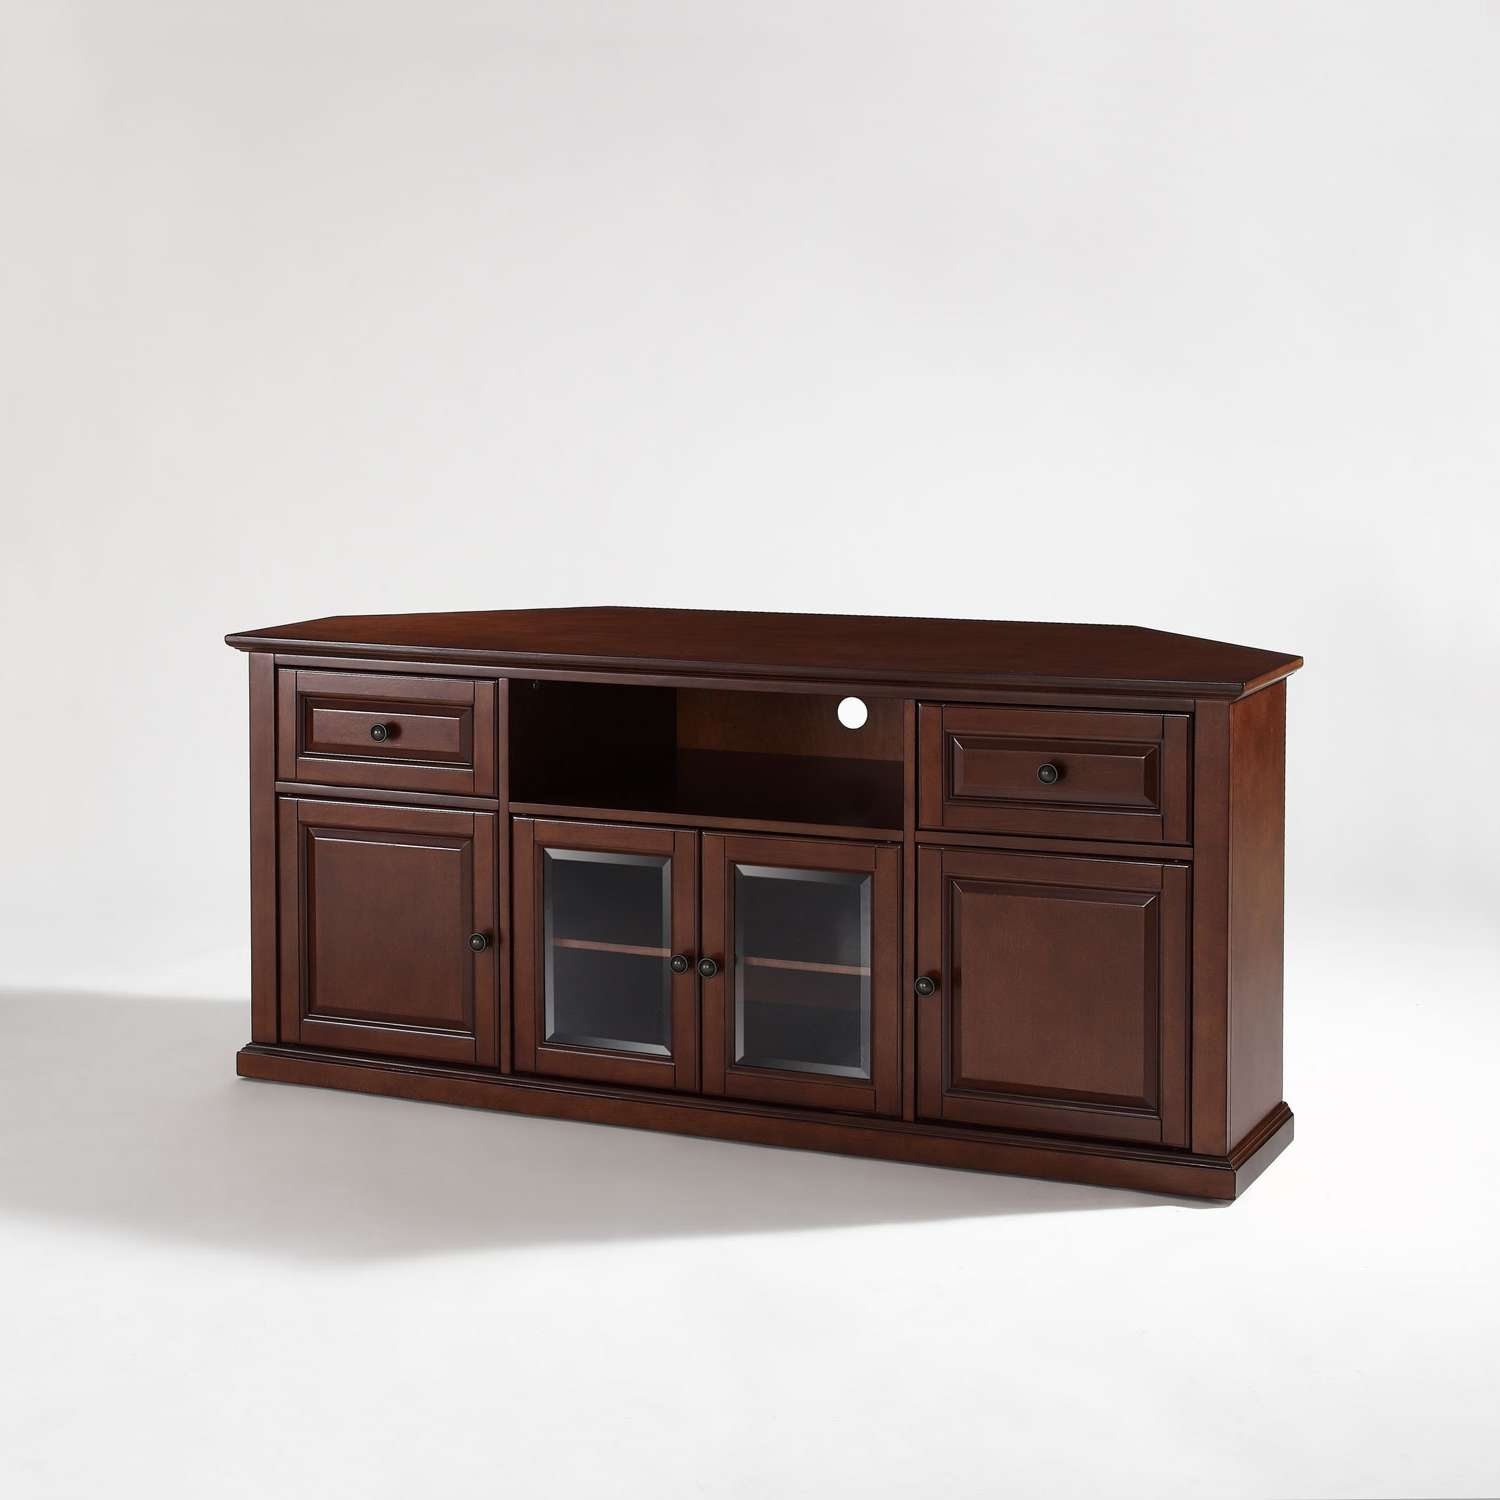 60 Inch Corner Tv Stand In Vintage Mahogany Crosley Furniture For Large Corner Tv Cabinets (View 4 of 20)